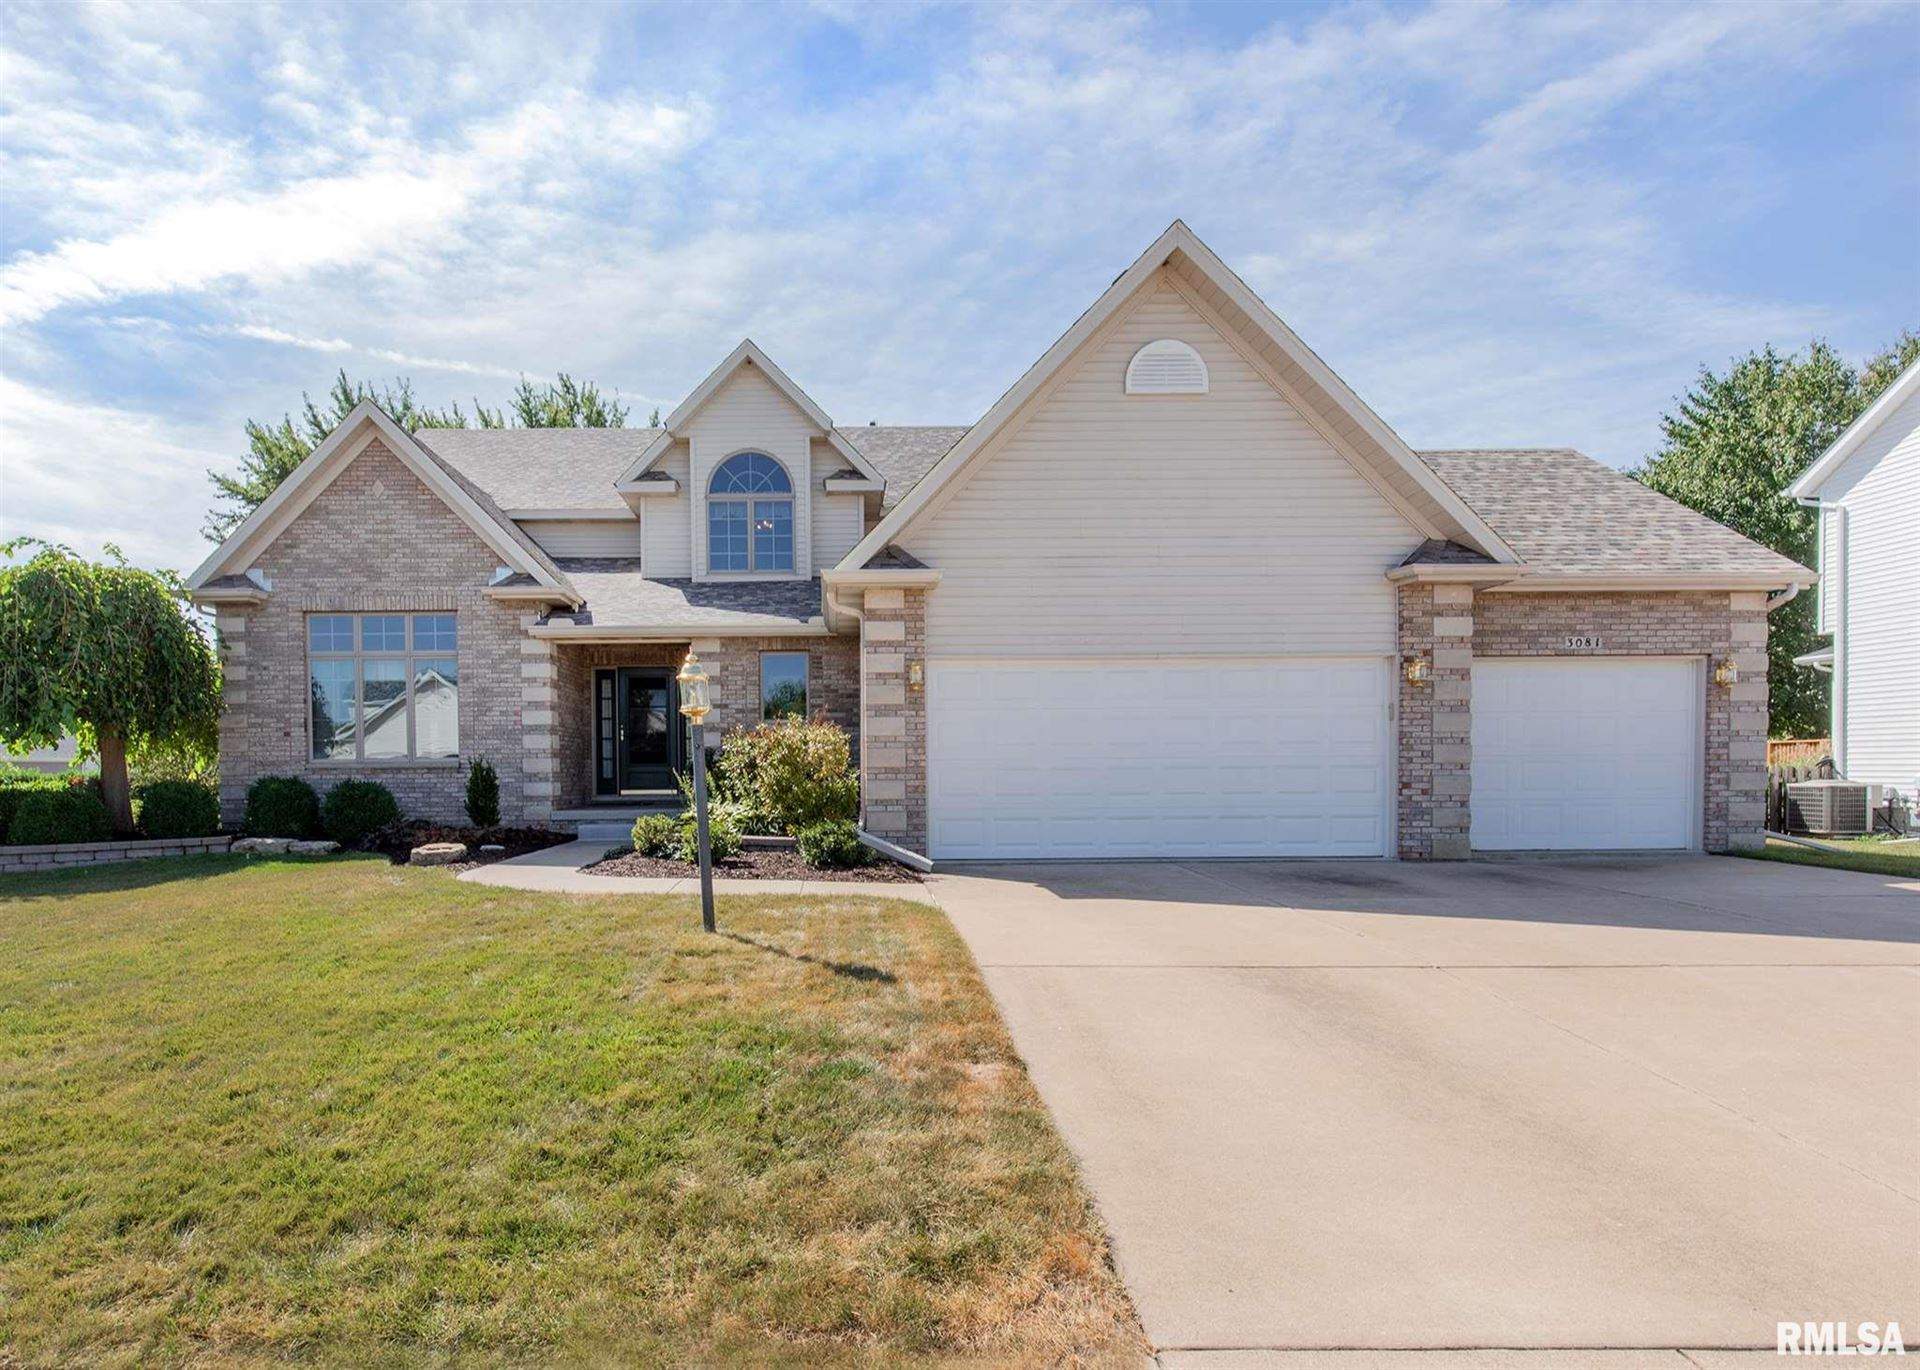 3081 48TH Avenue, Bettendorf, IA 52722 - MLS#: QC4214964